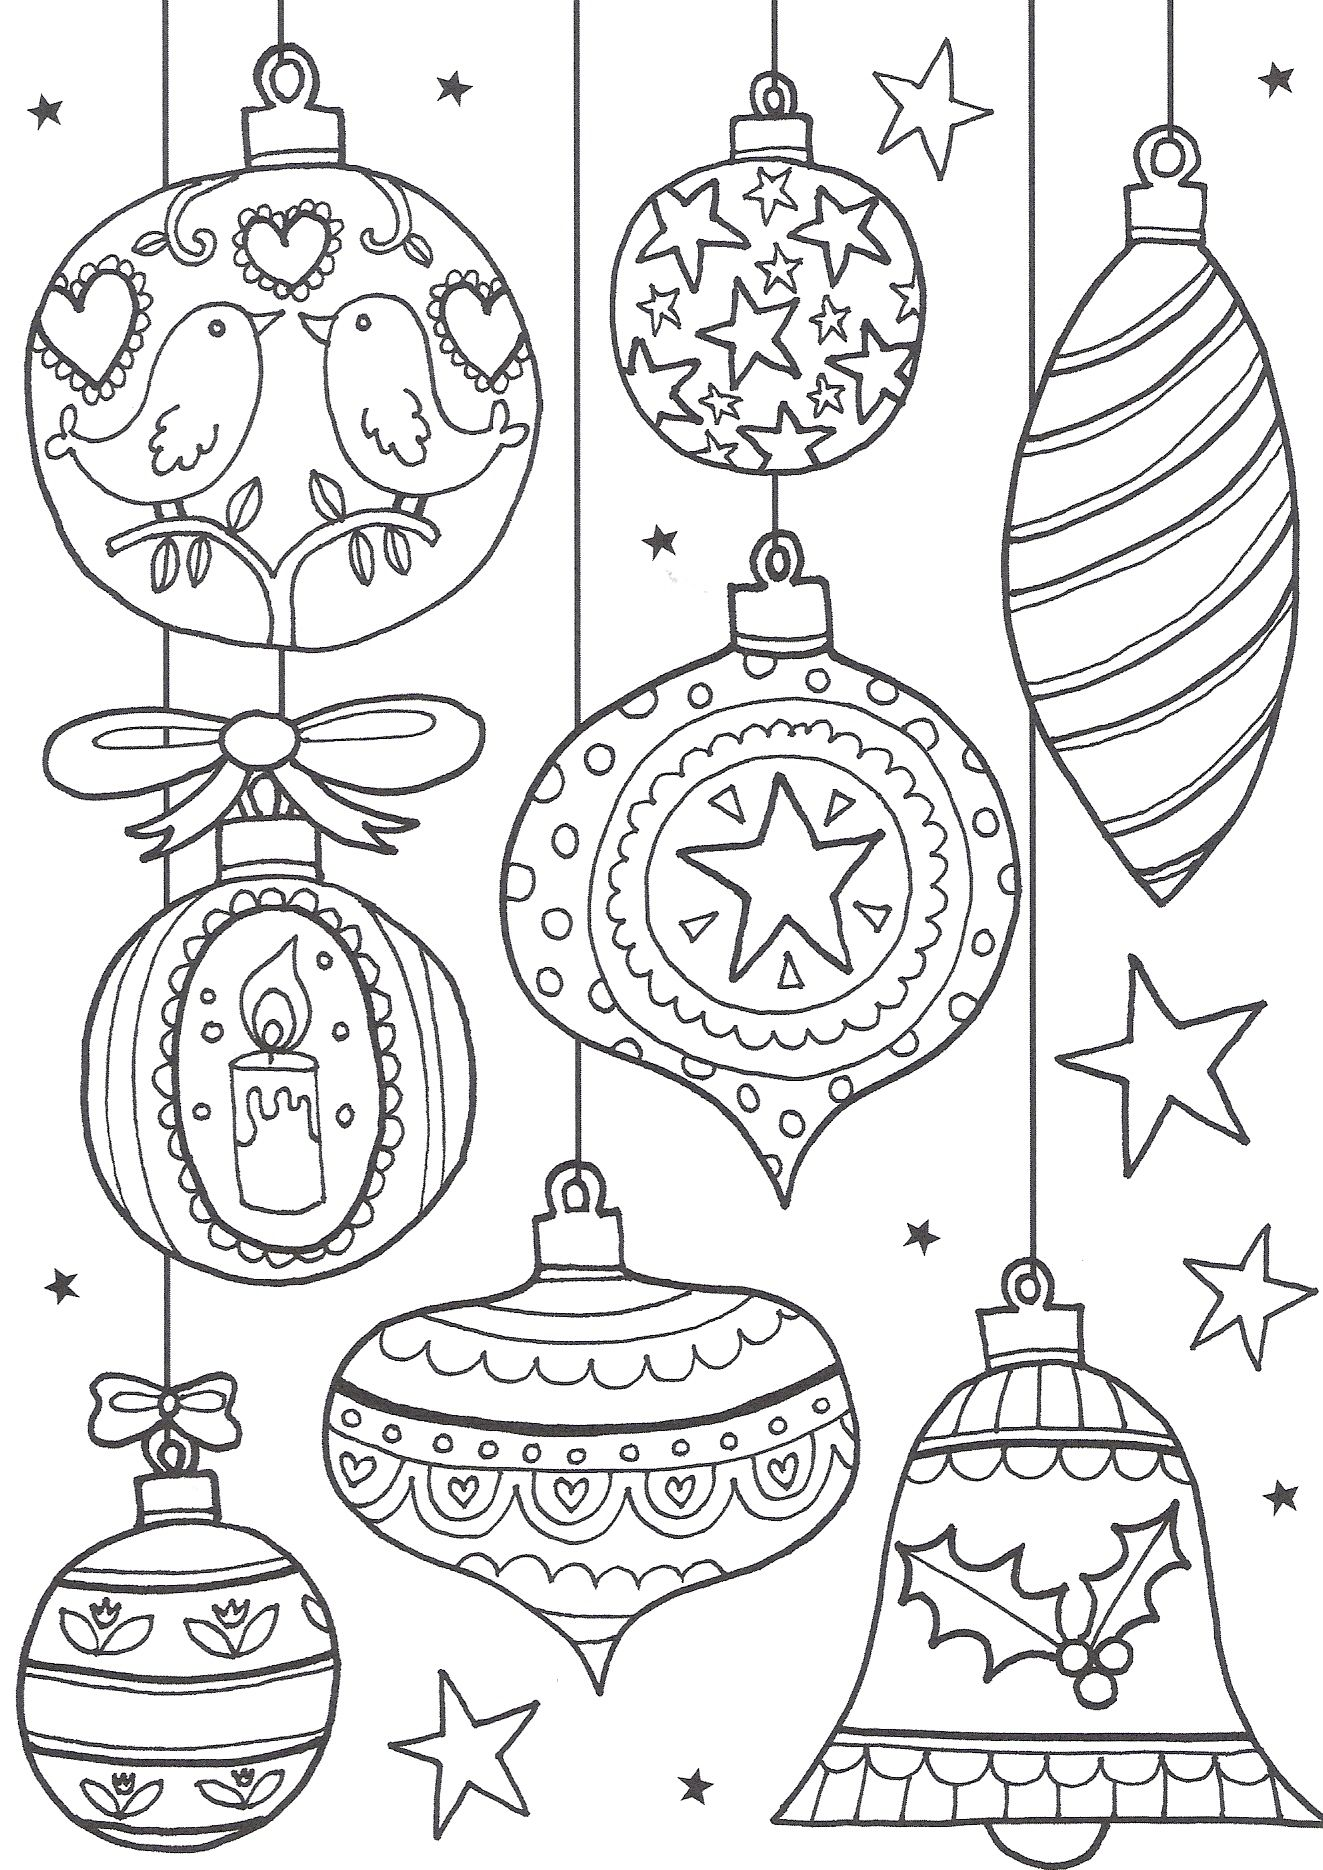 Christmas Coloring Pages For Adults With Free Colouring The Ultimate Roundup